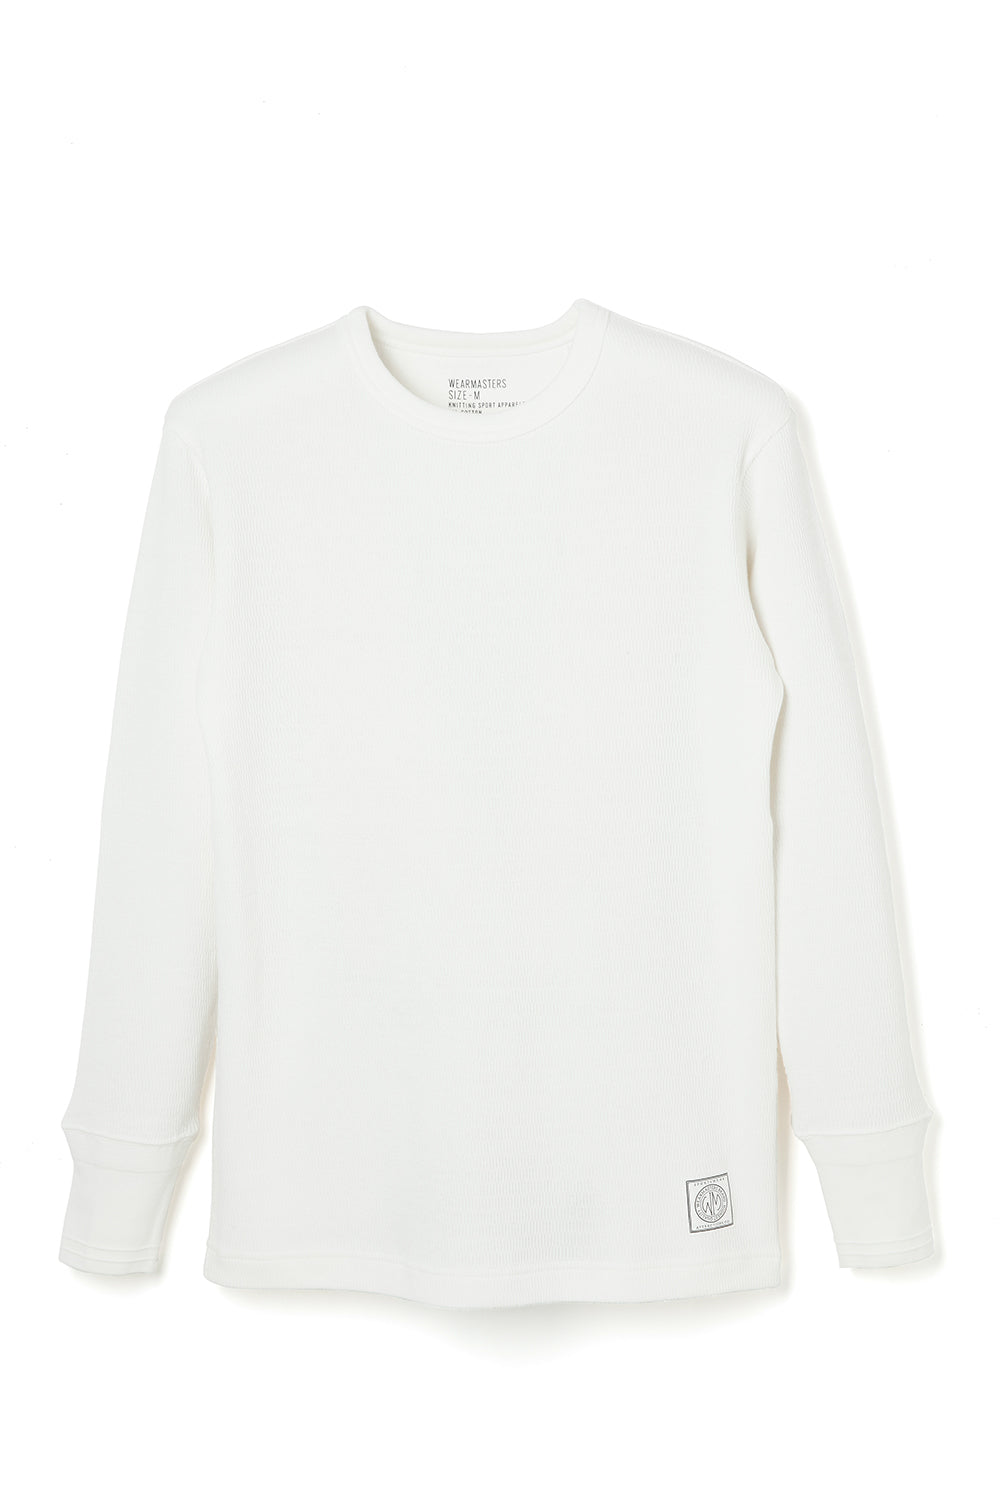 Lot.680 Crew Neck Thermal -White-